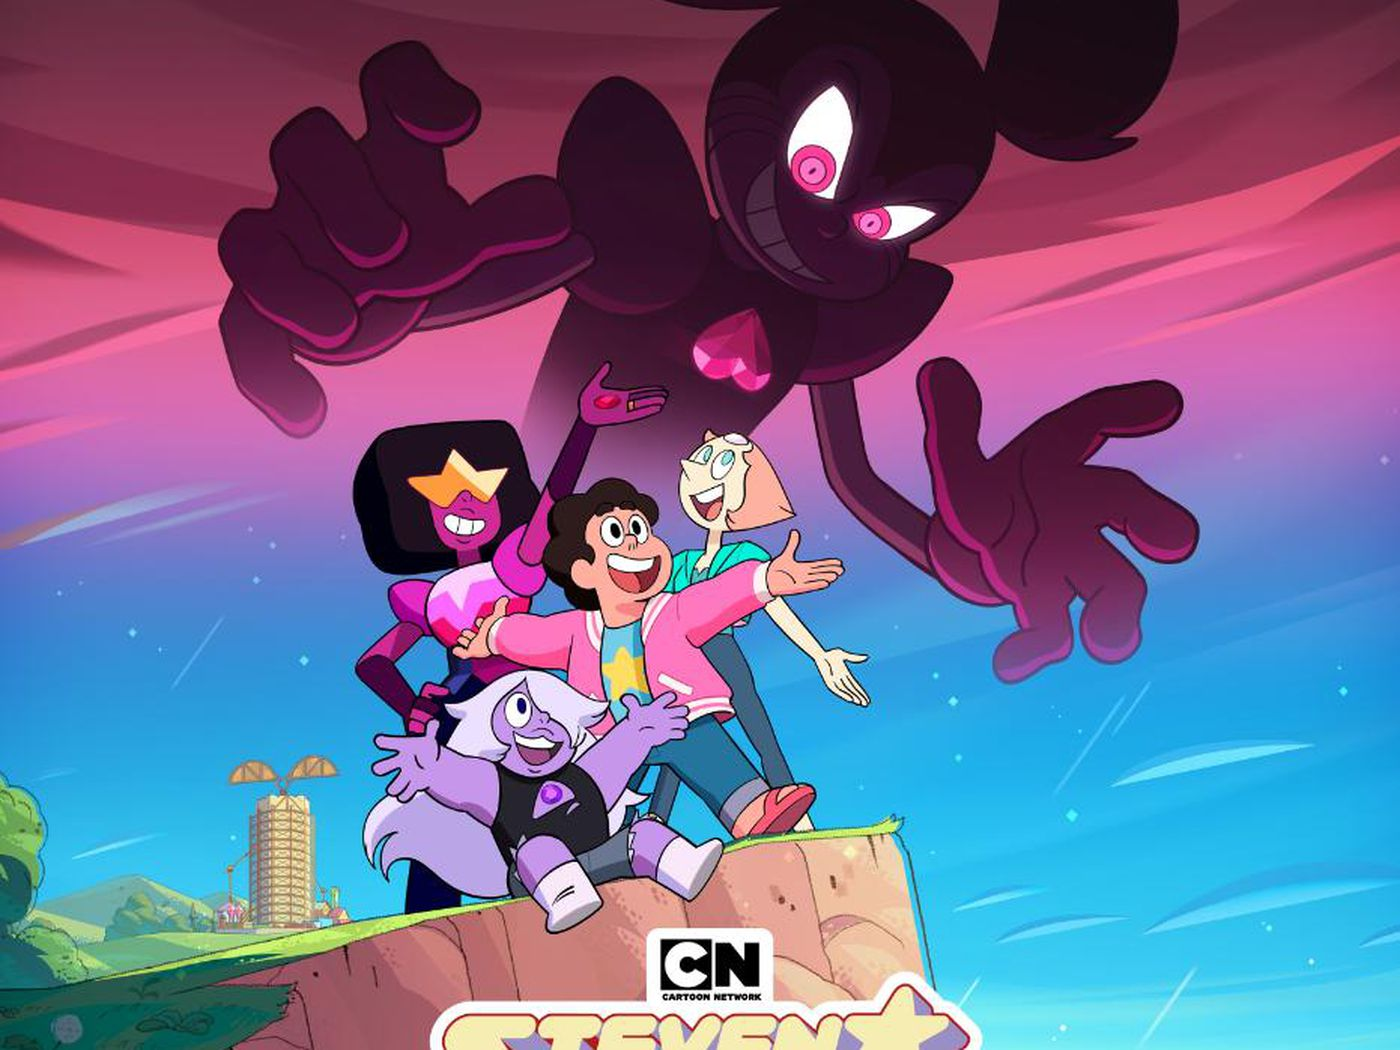 Steven Universe movie poster reveals giant, heart-themed